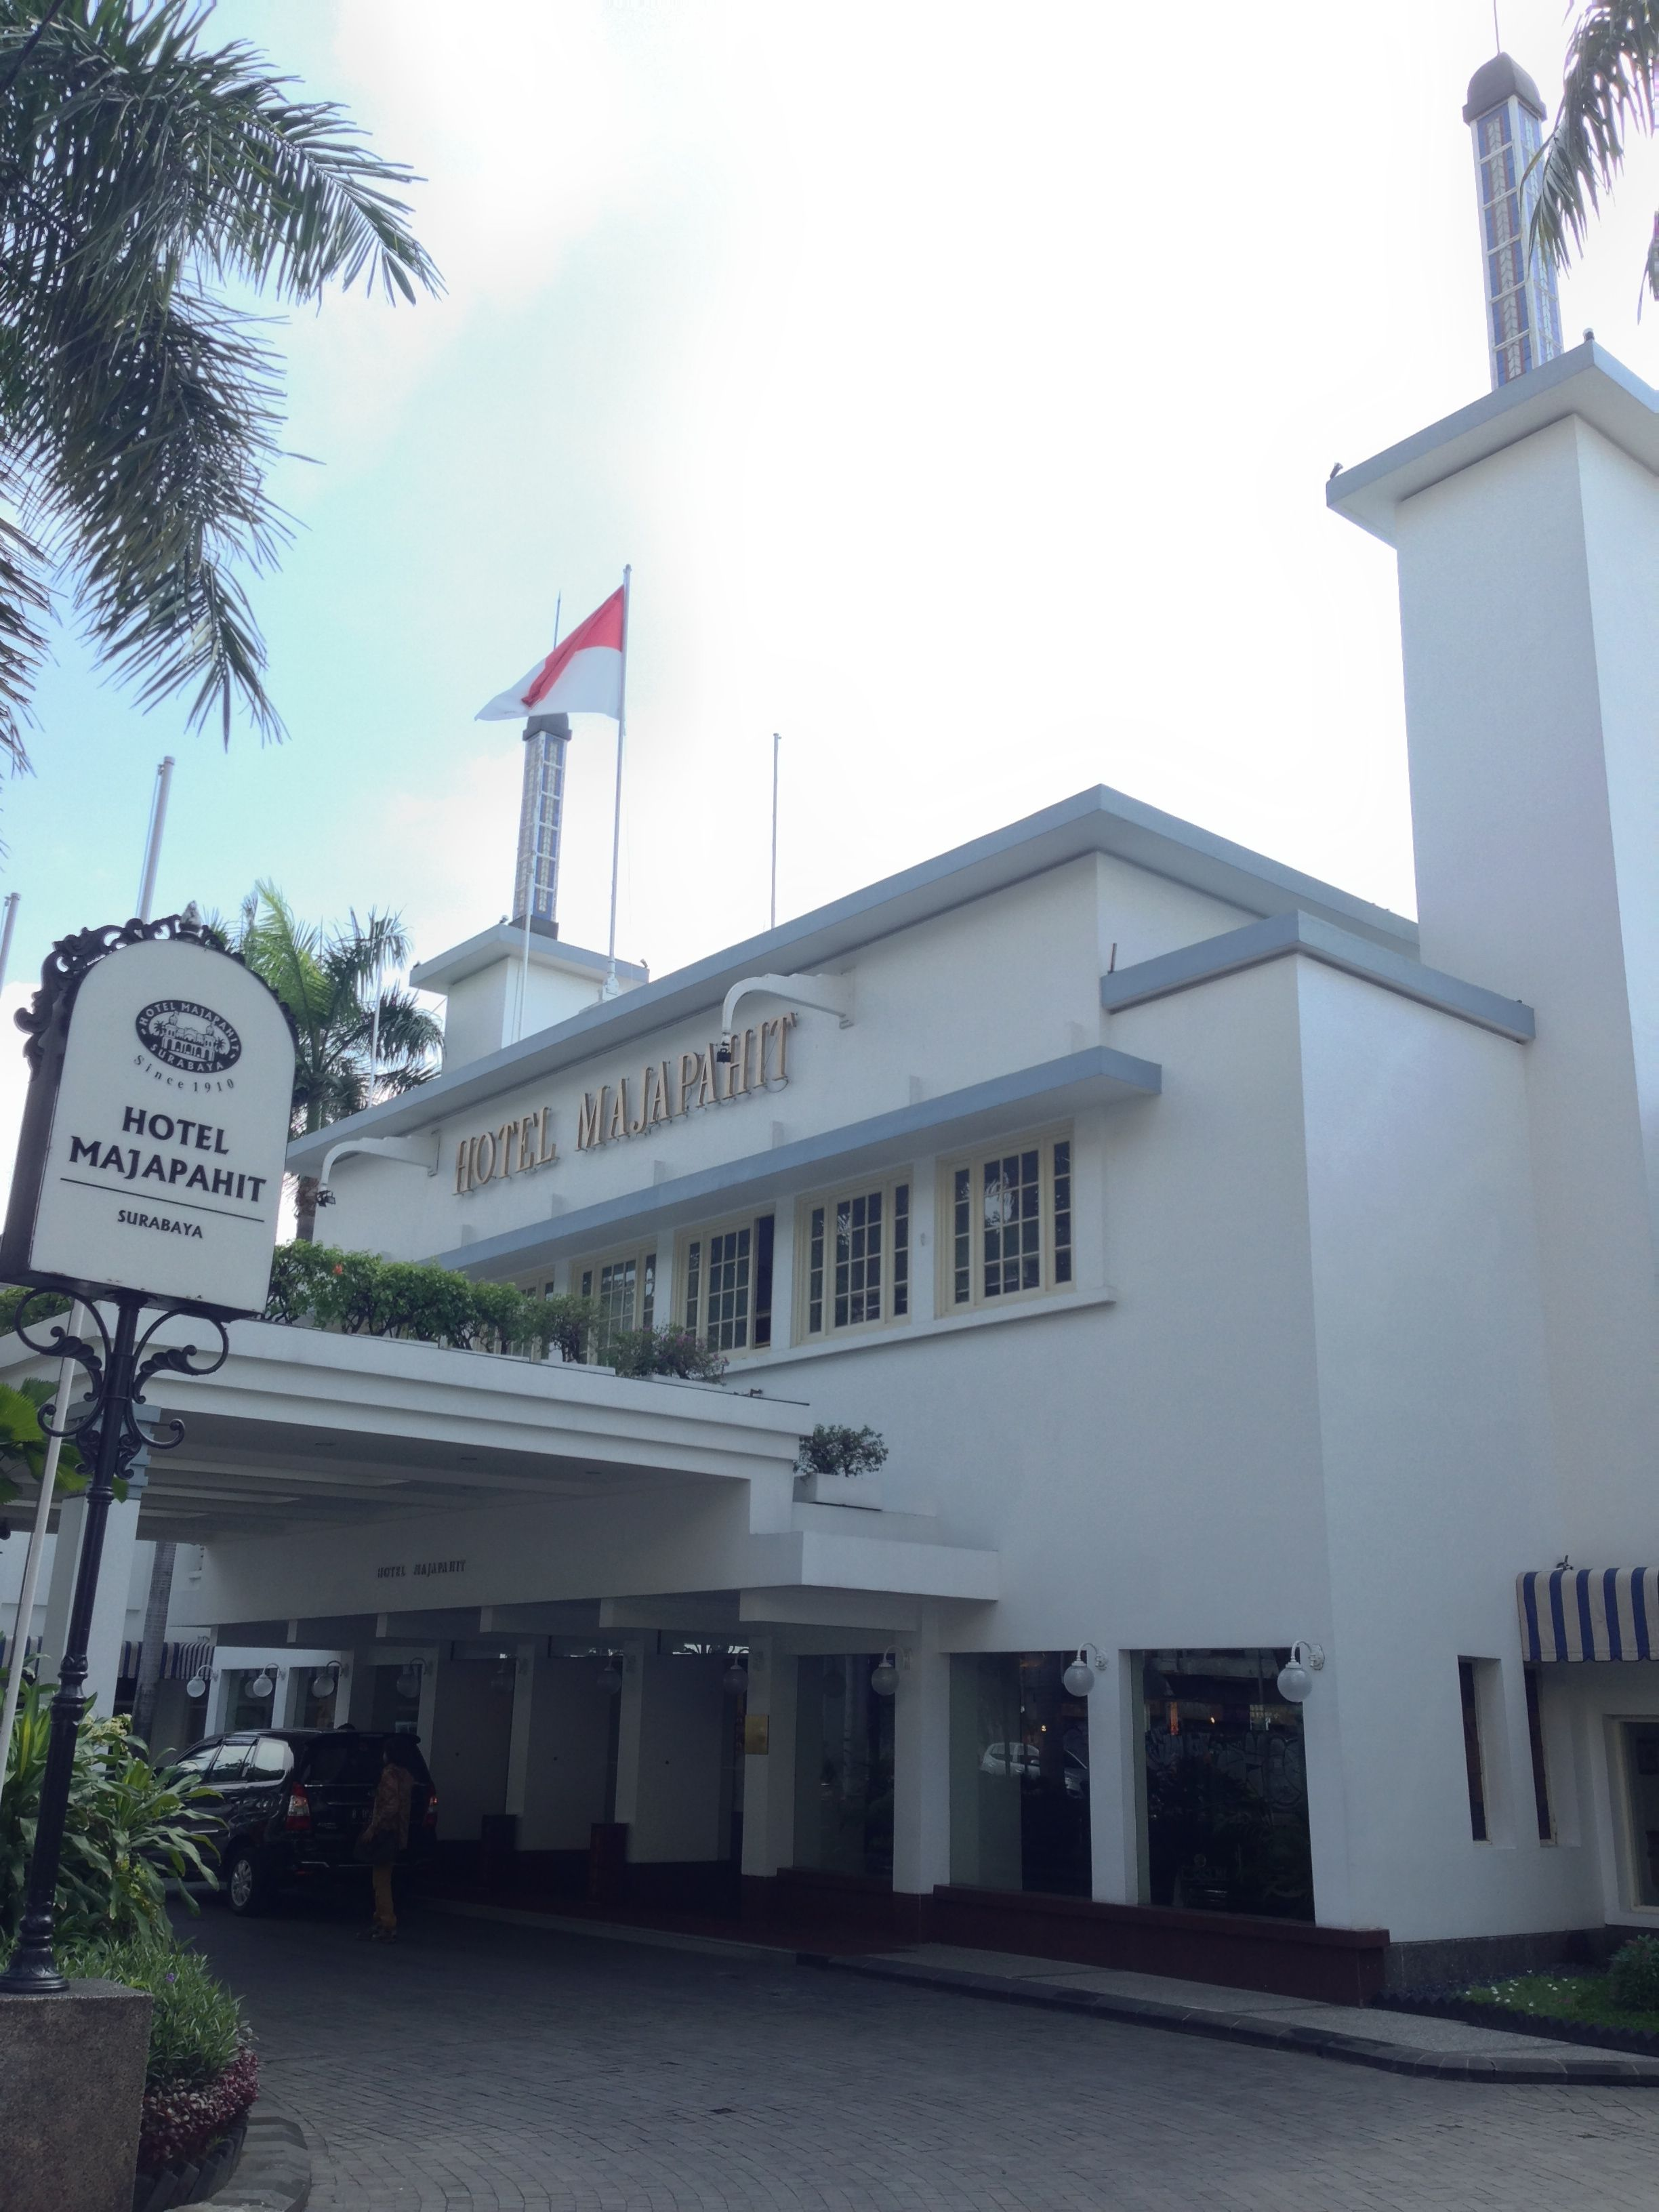 hotel majapahit surabaya the hotel was the site of the famous rh pinterest com